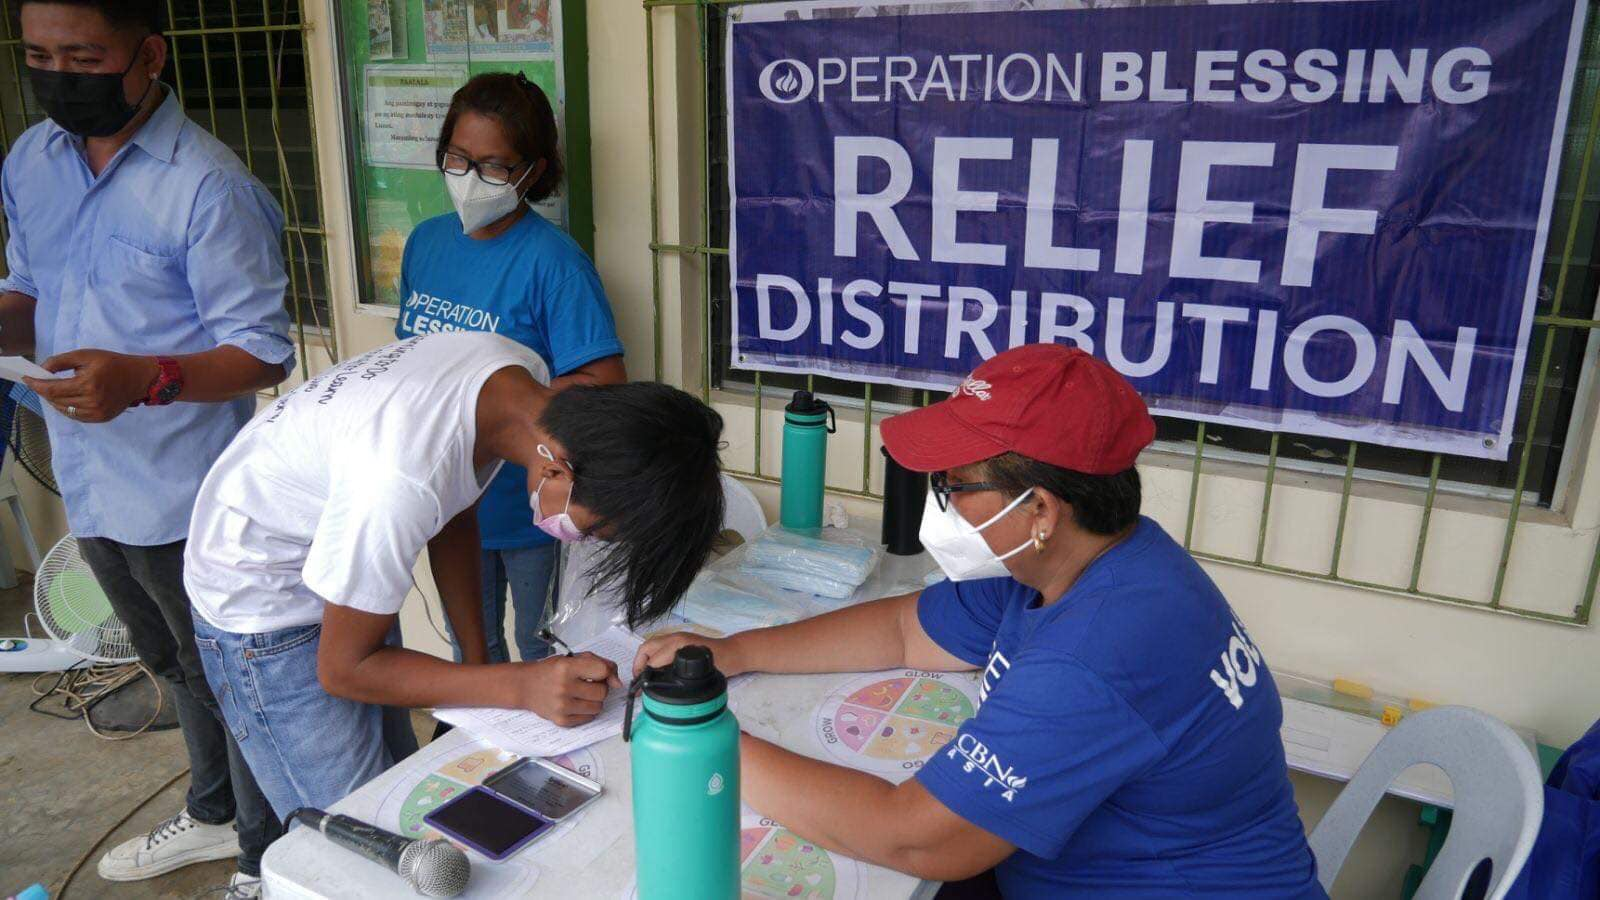 When Hunger Knocks, We Respond with Much-Needed Relief and Prayers